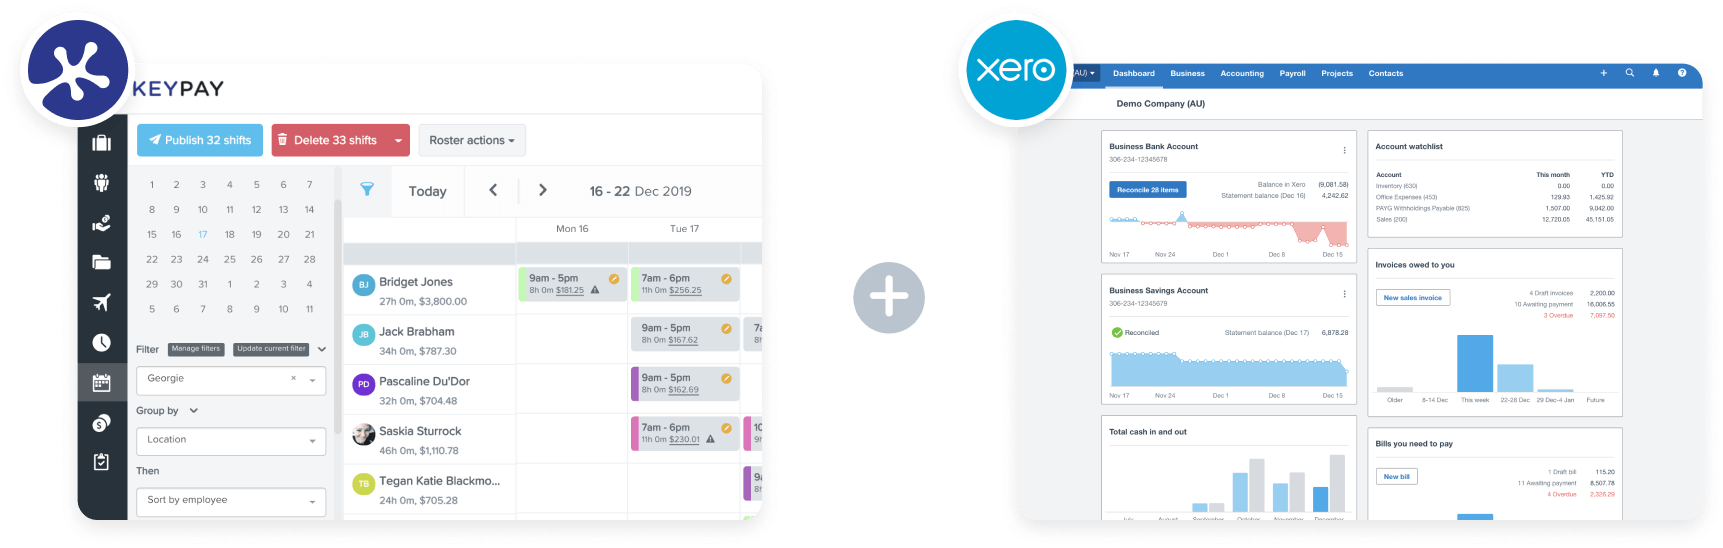 Dashboard for Xero and KeyPay integration